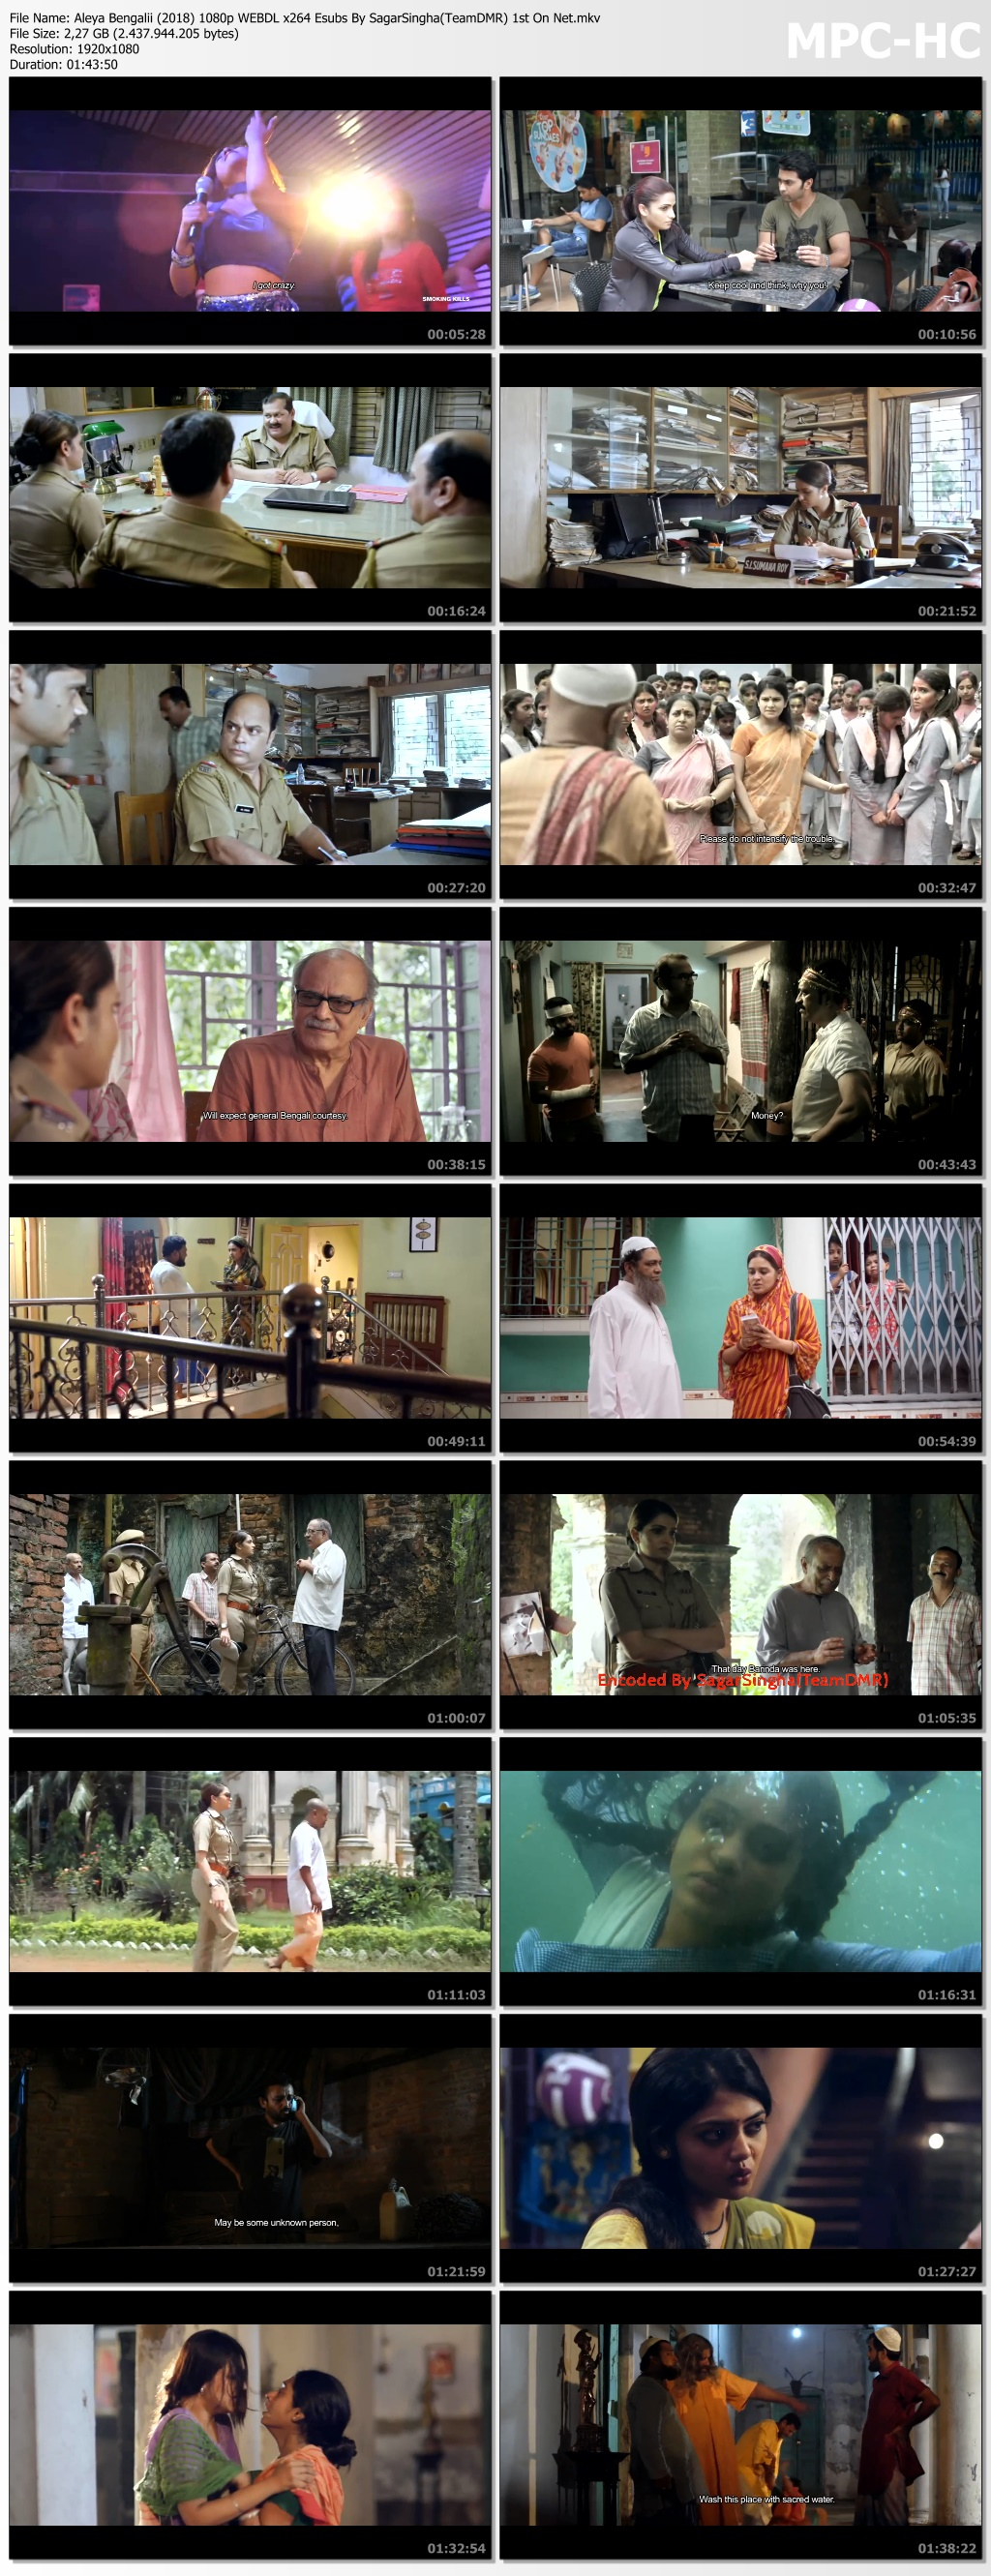 Aleya-Bengalii-2018-1080p-WEBDL-x264-Esubs-By-Sagar-Singha-Team-DMR-1st-On-Net-mkv-thumbs